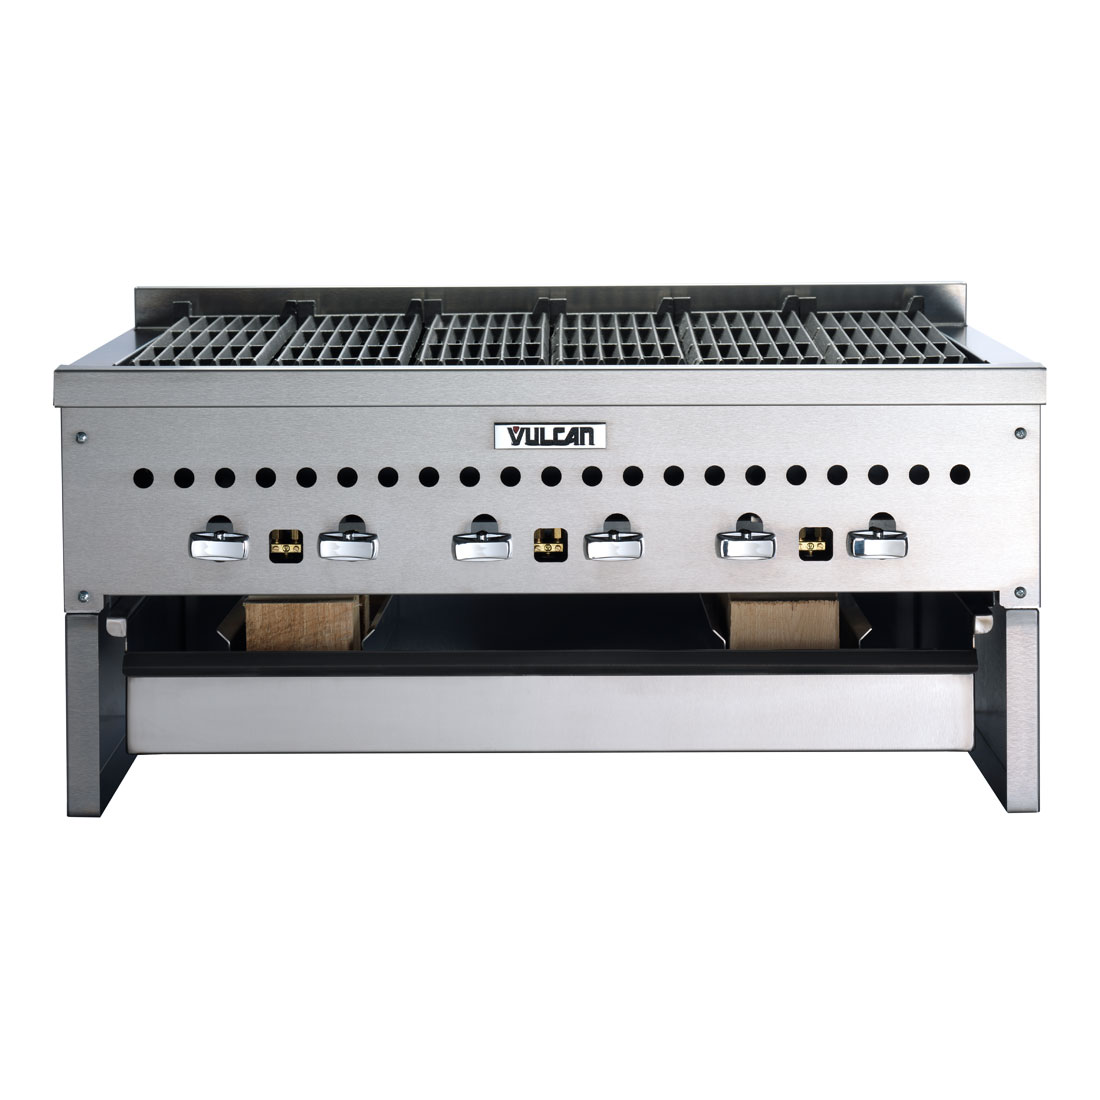 Vulcan-Hart CTSMOKER-VCCB25 Wood Assist Low Profile Smoker Base w/ (1) Grease Tray, Stainless